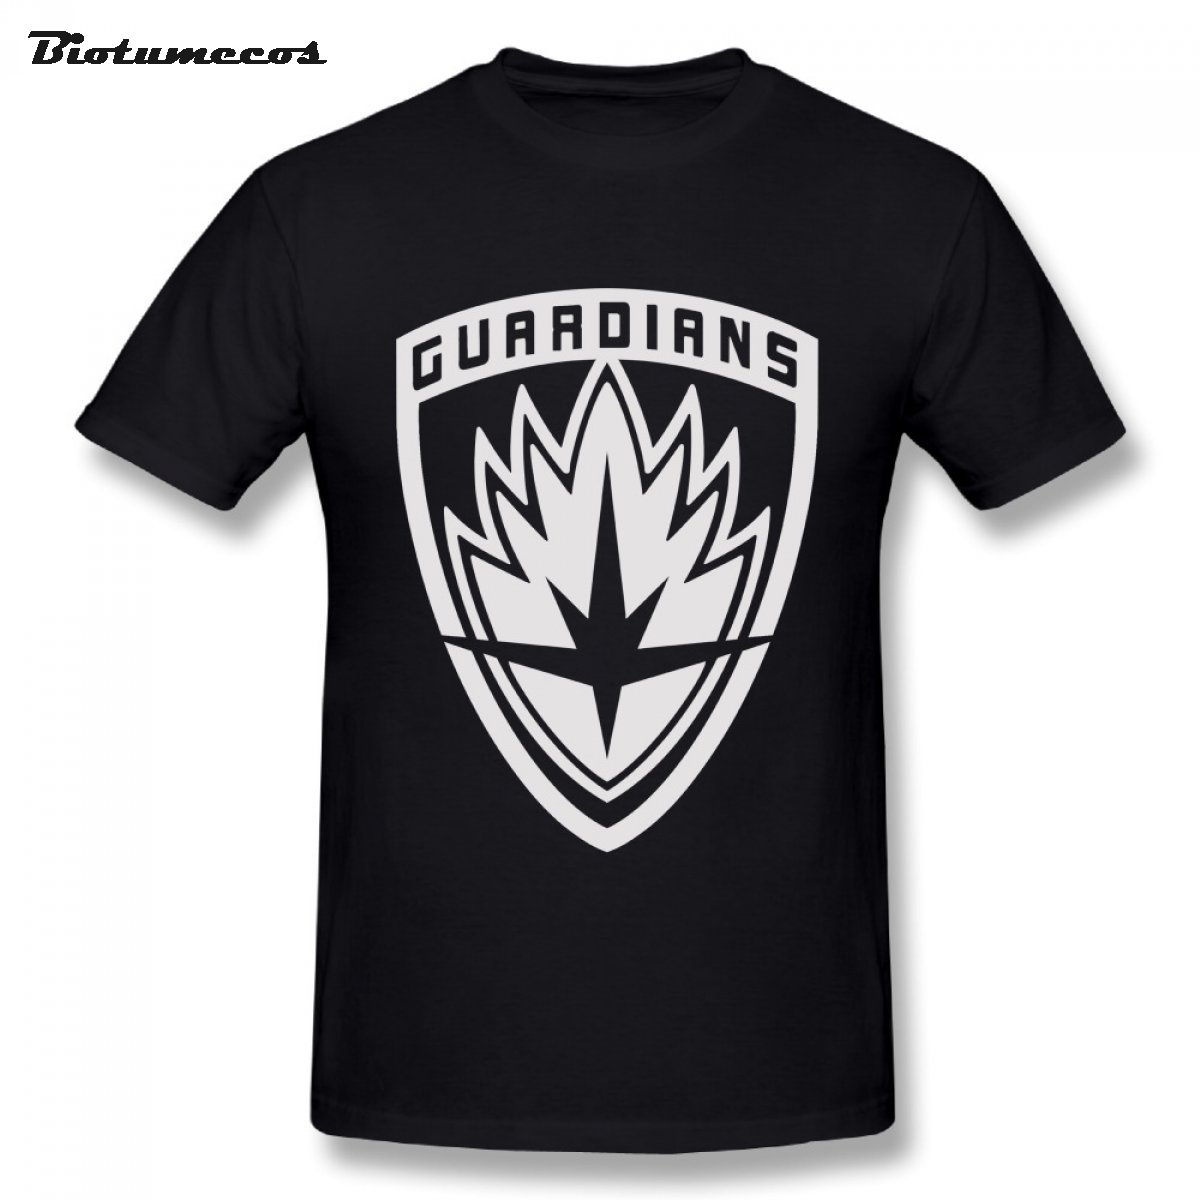 Mens Summer O-Neck Casual Tee Personalized Short Sleeved T-shirt Comfortable Guardians of the Galaxy T-shirt MTYS020